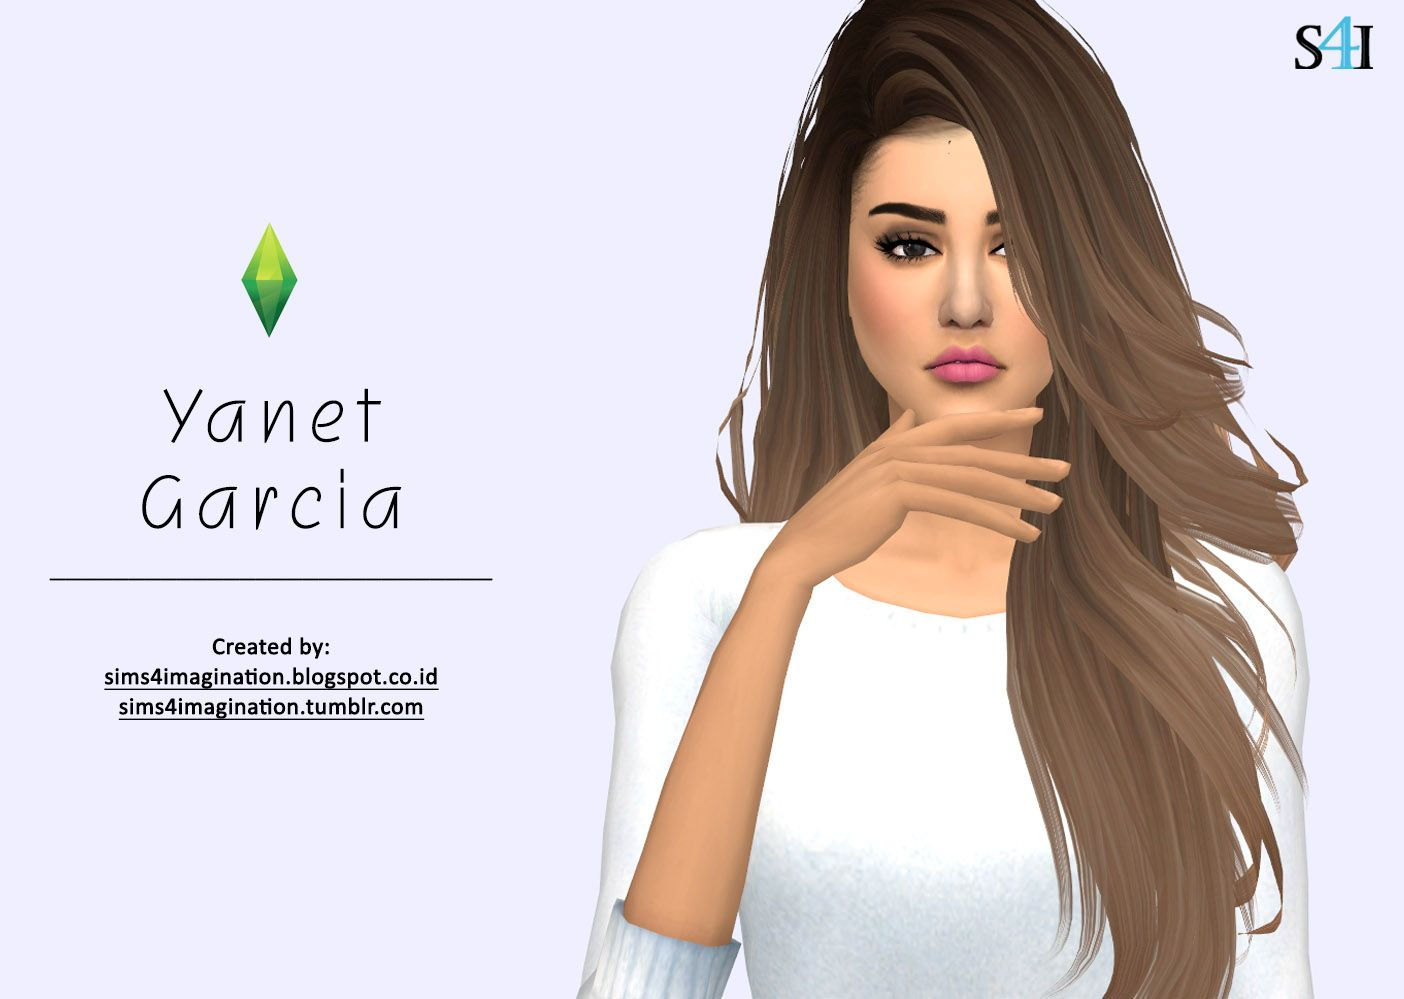 Sims of garcia is a mexican model and meteorologist